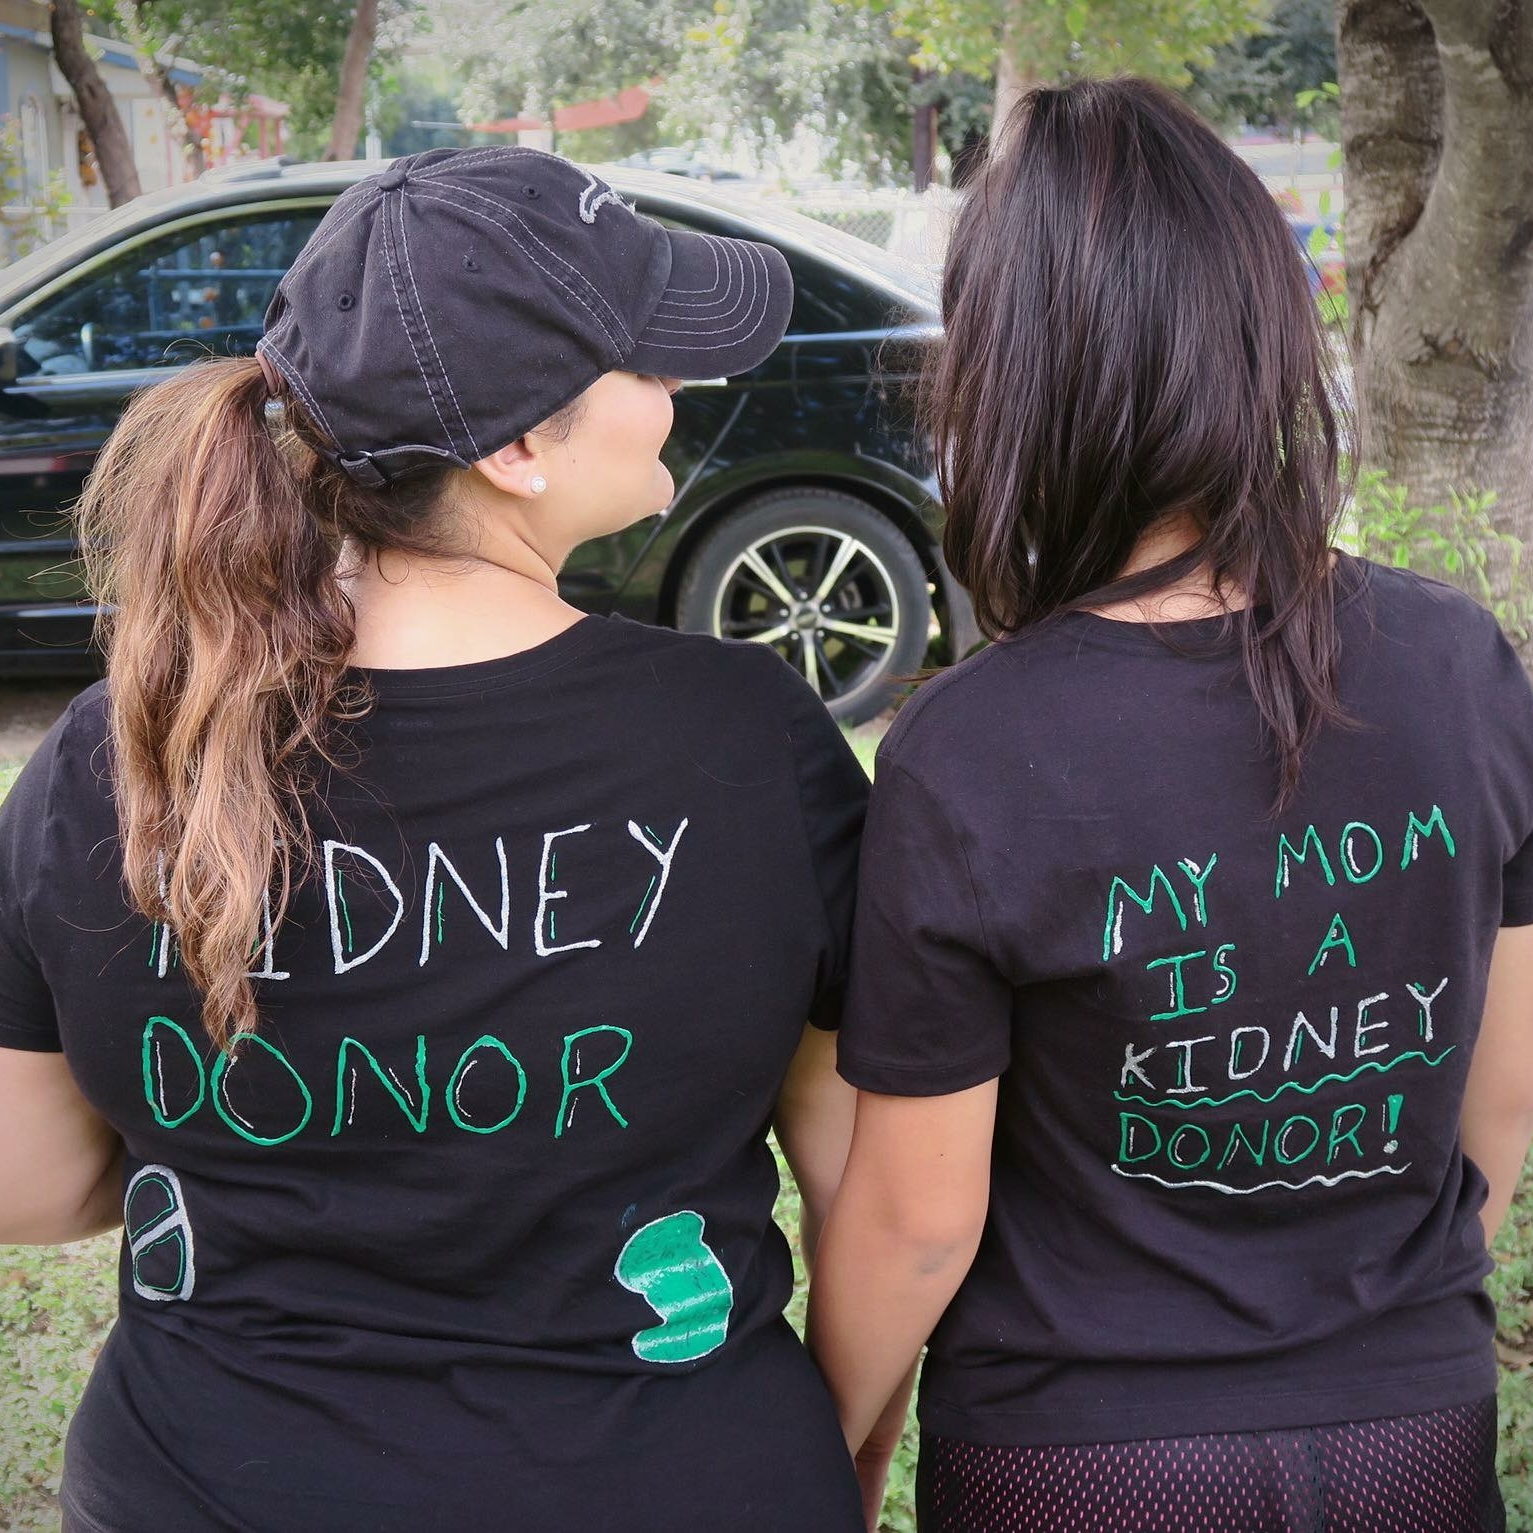 Me and one of my teenagers sporting the t-shirts we made for the Kidney Walk. 4 months post surgery.